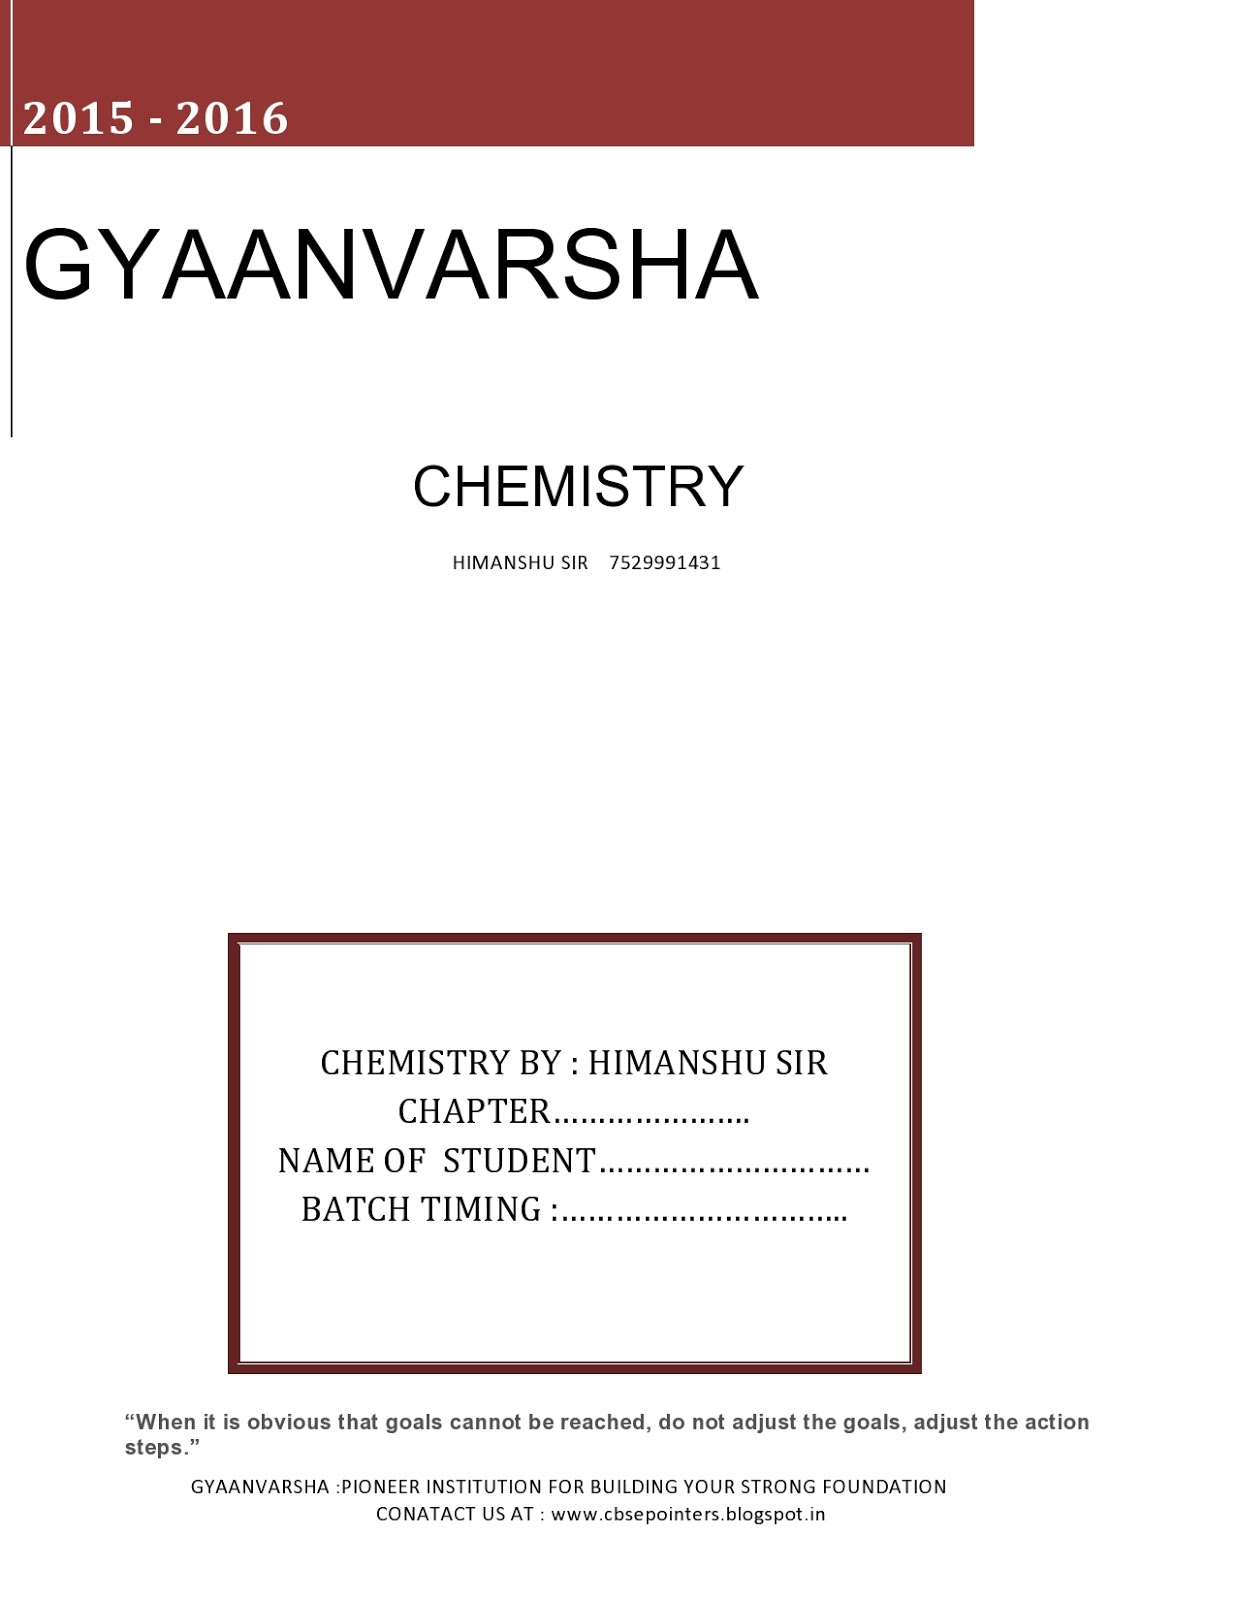 GYAANVARSHA - an initiative towards excellence in education